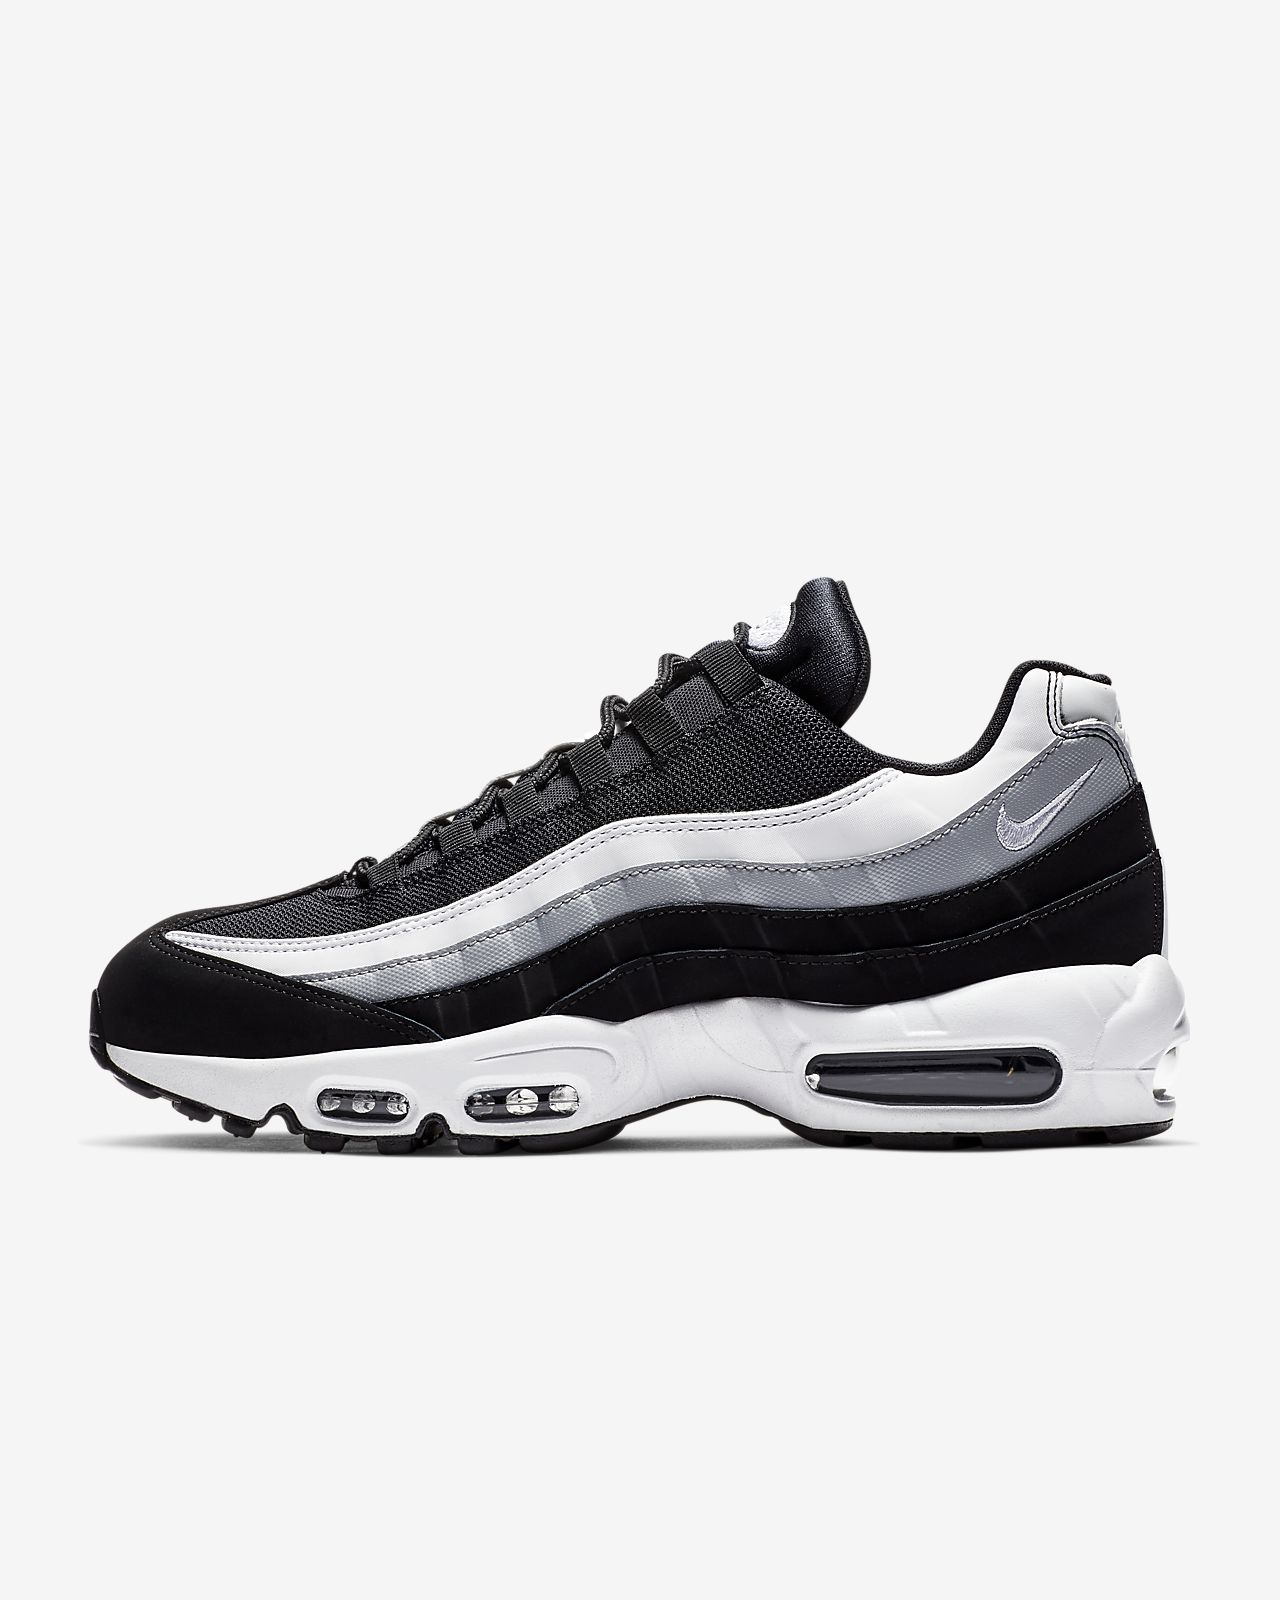 innovative design 67595 c0692 Men s Shoe. Nike Air Max 95 Essential